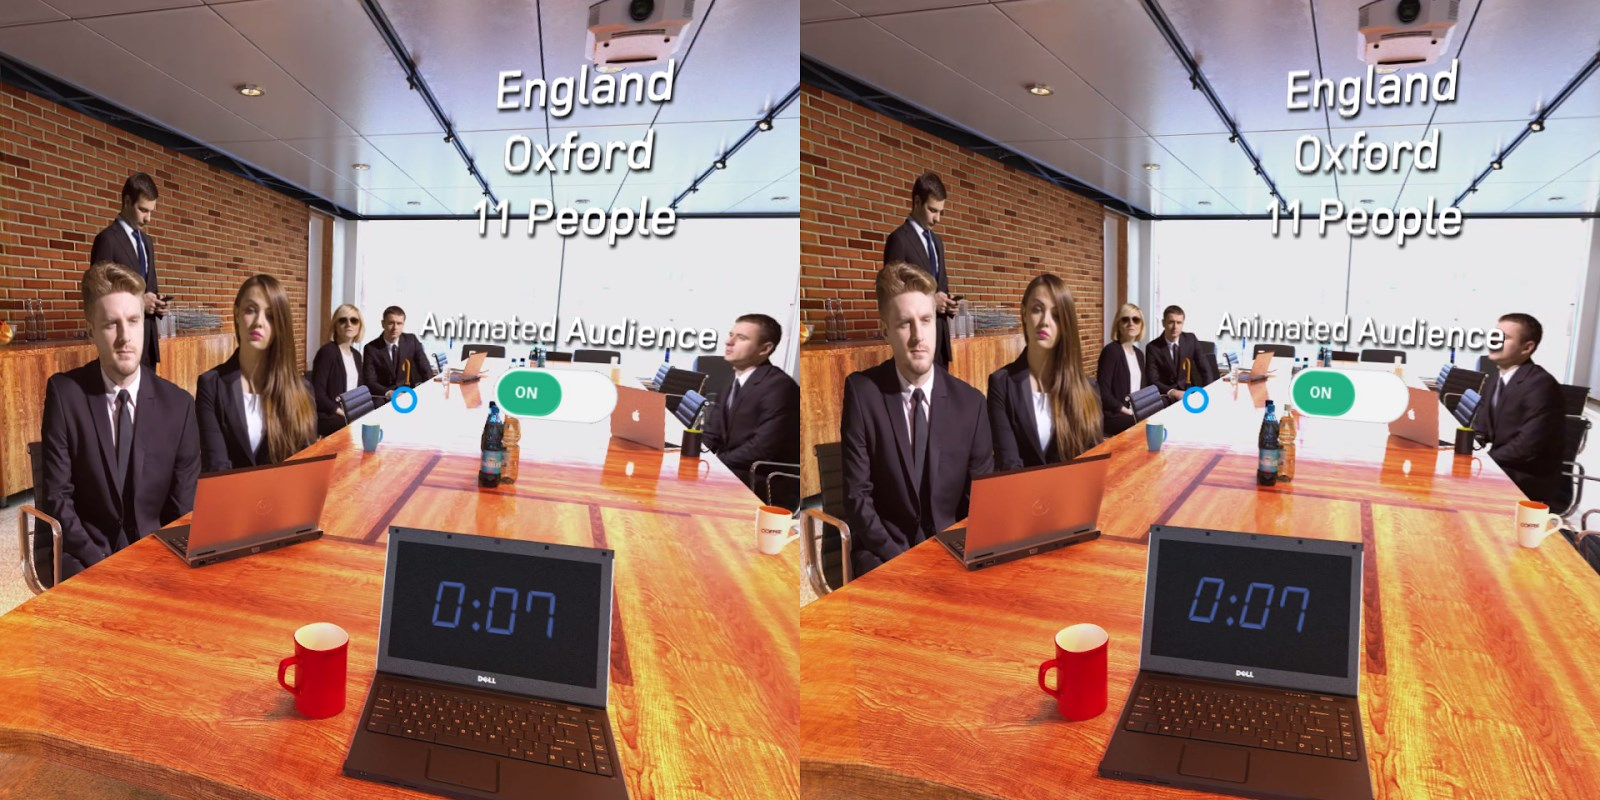 The app puts your in a conference room or auditorium complete with presentation screen, timer and audience